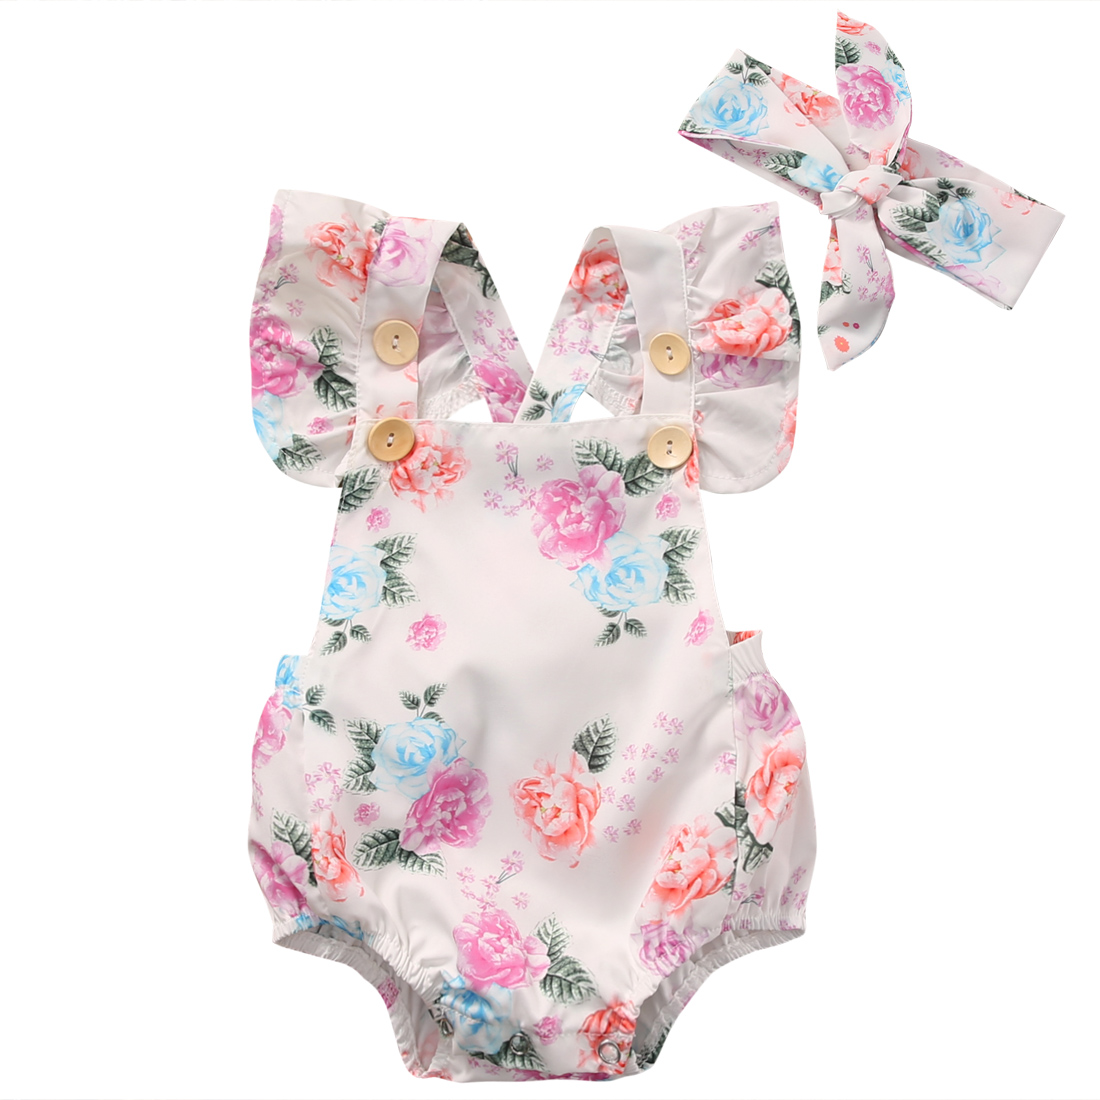 New Newborn Baby Girl Clothes Clothing Floral Romper Flower One-pieces Jumpsuit With Headband Summer Clothes Sunsuit Outfits